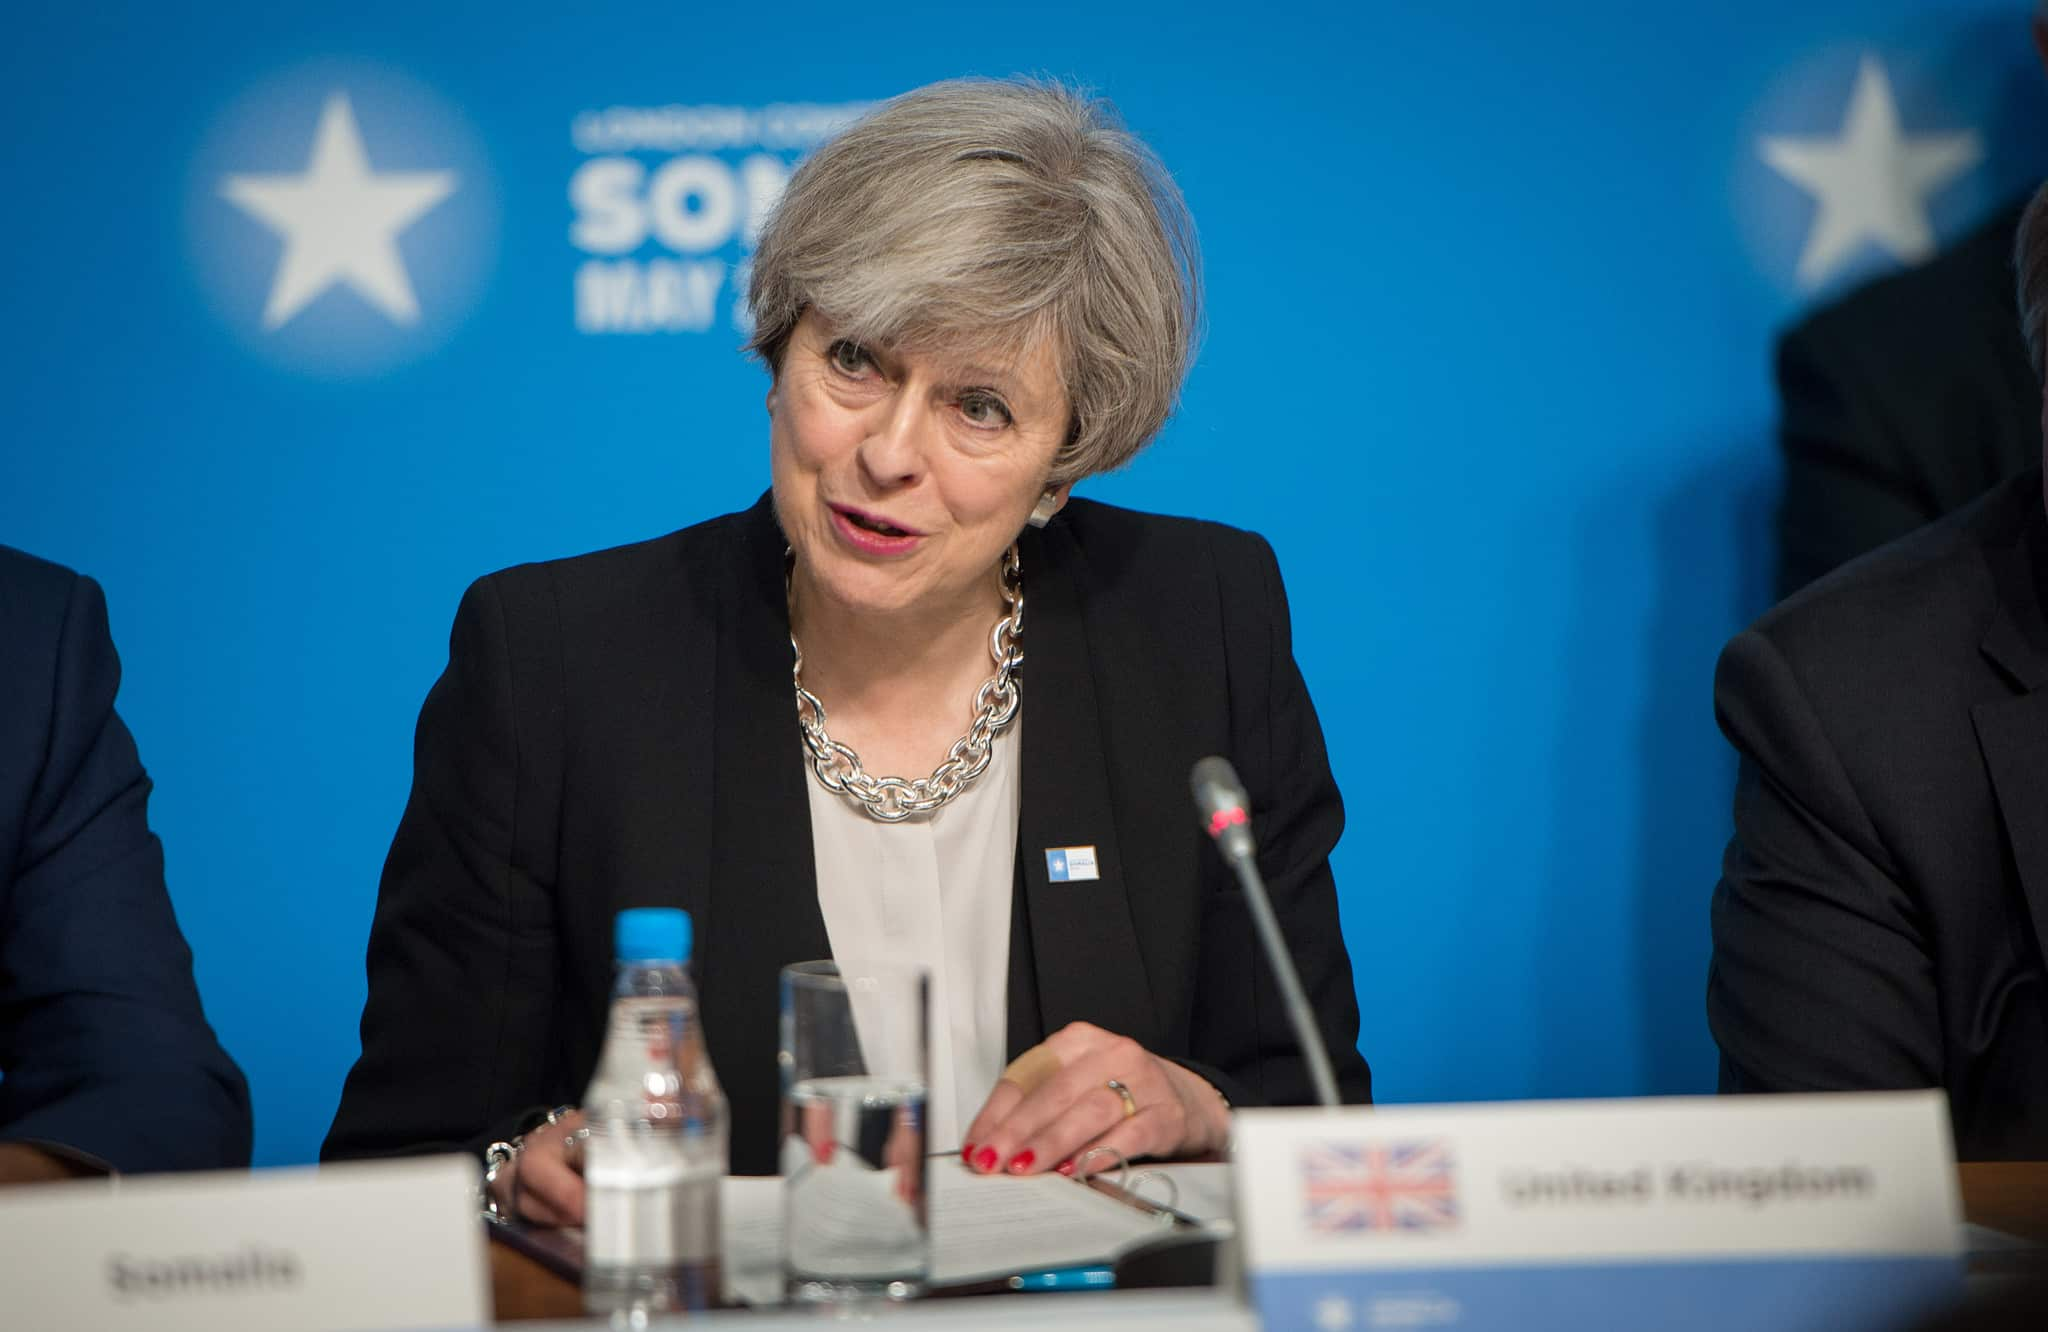 Strong and stable leadership Mrs May?